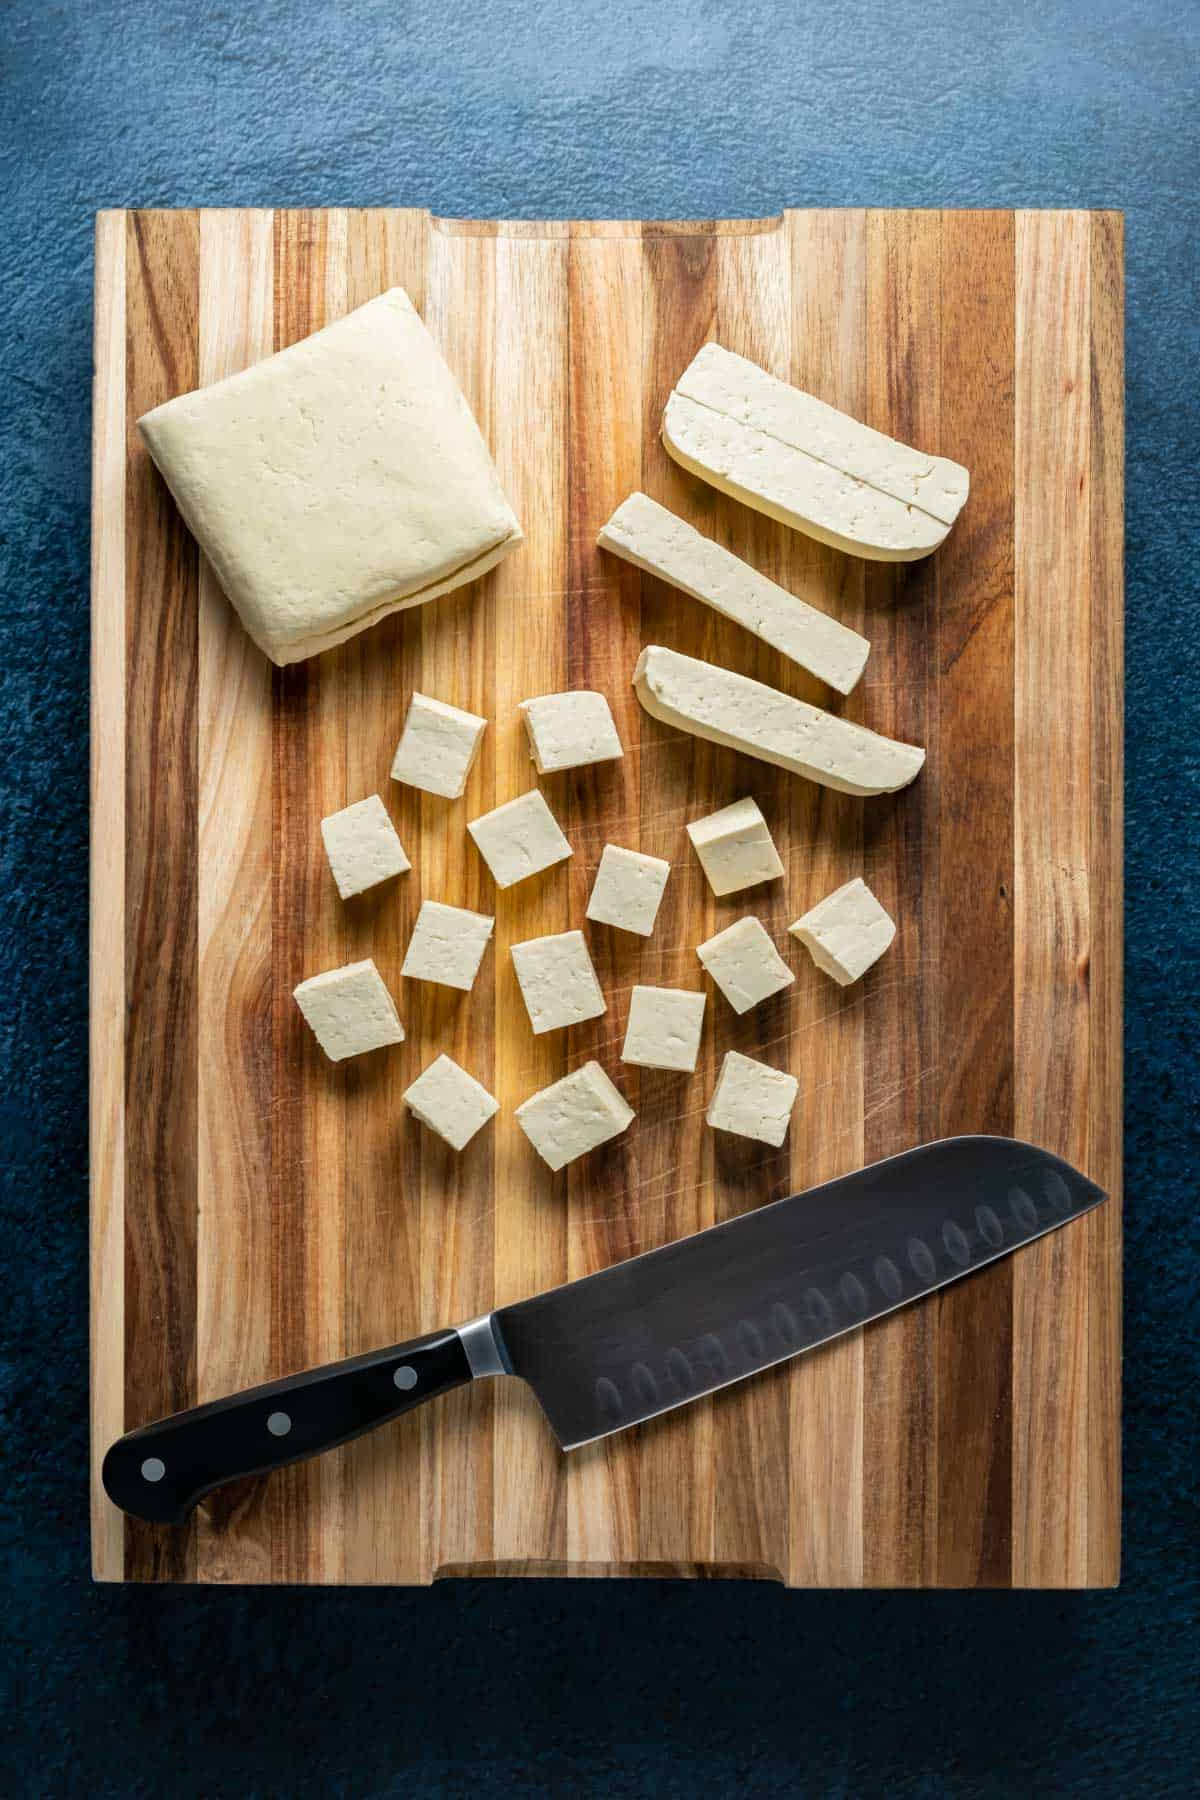 Cutting tofu into cubes on a wooden cutting board.